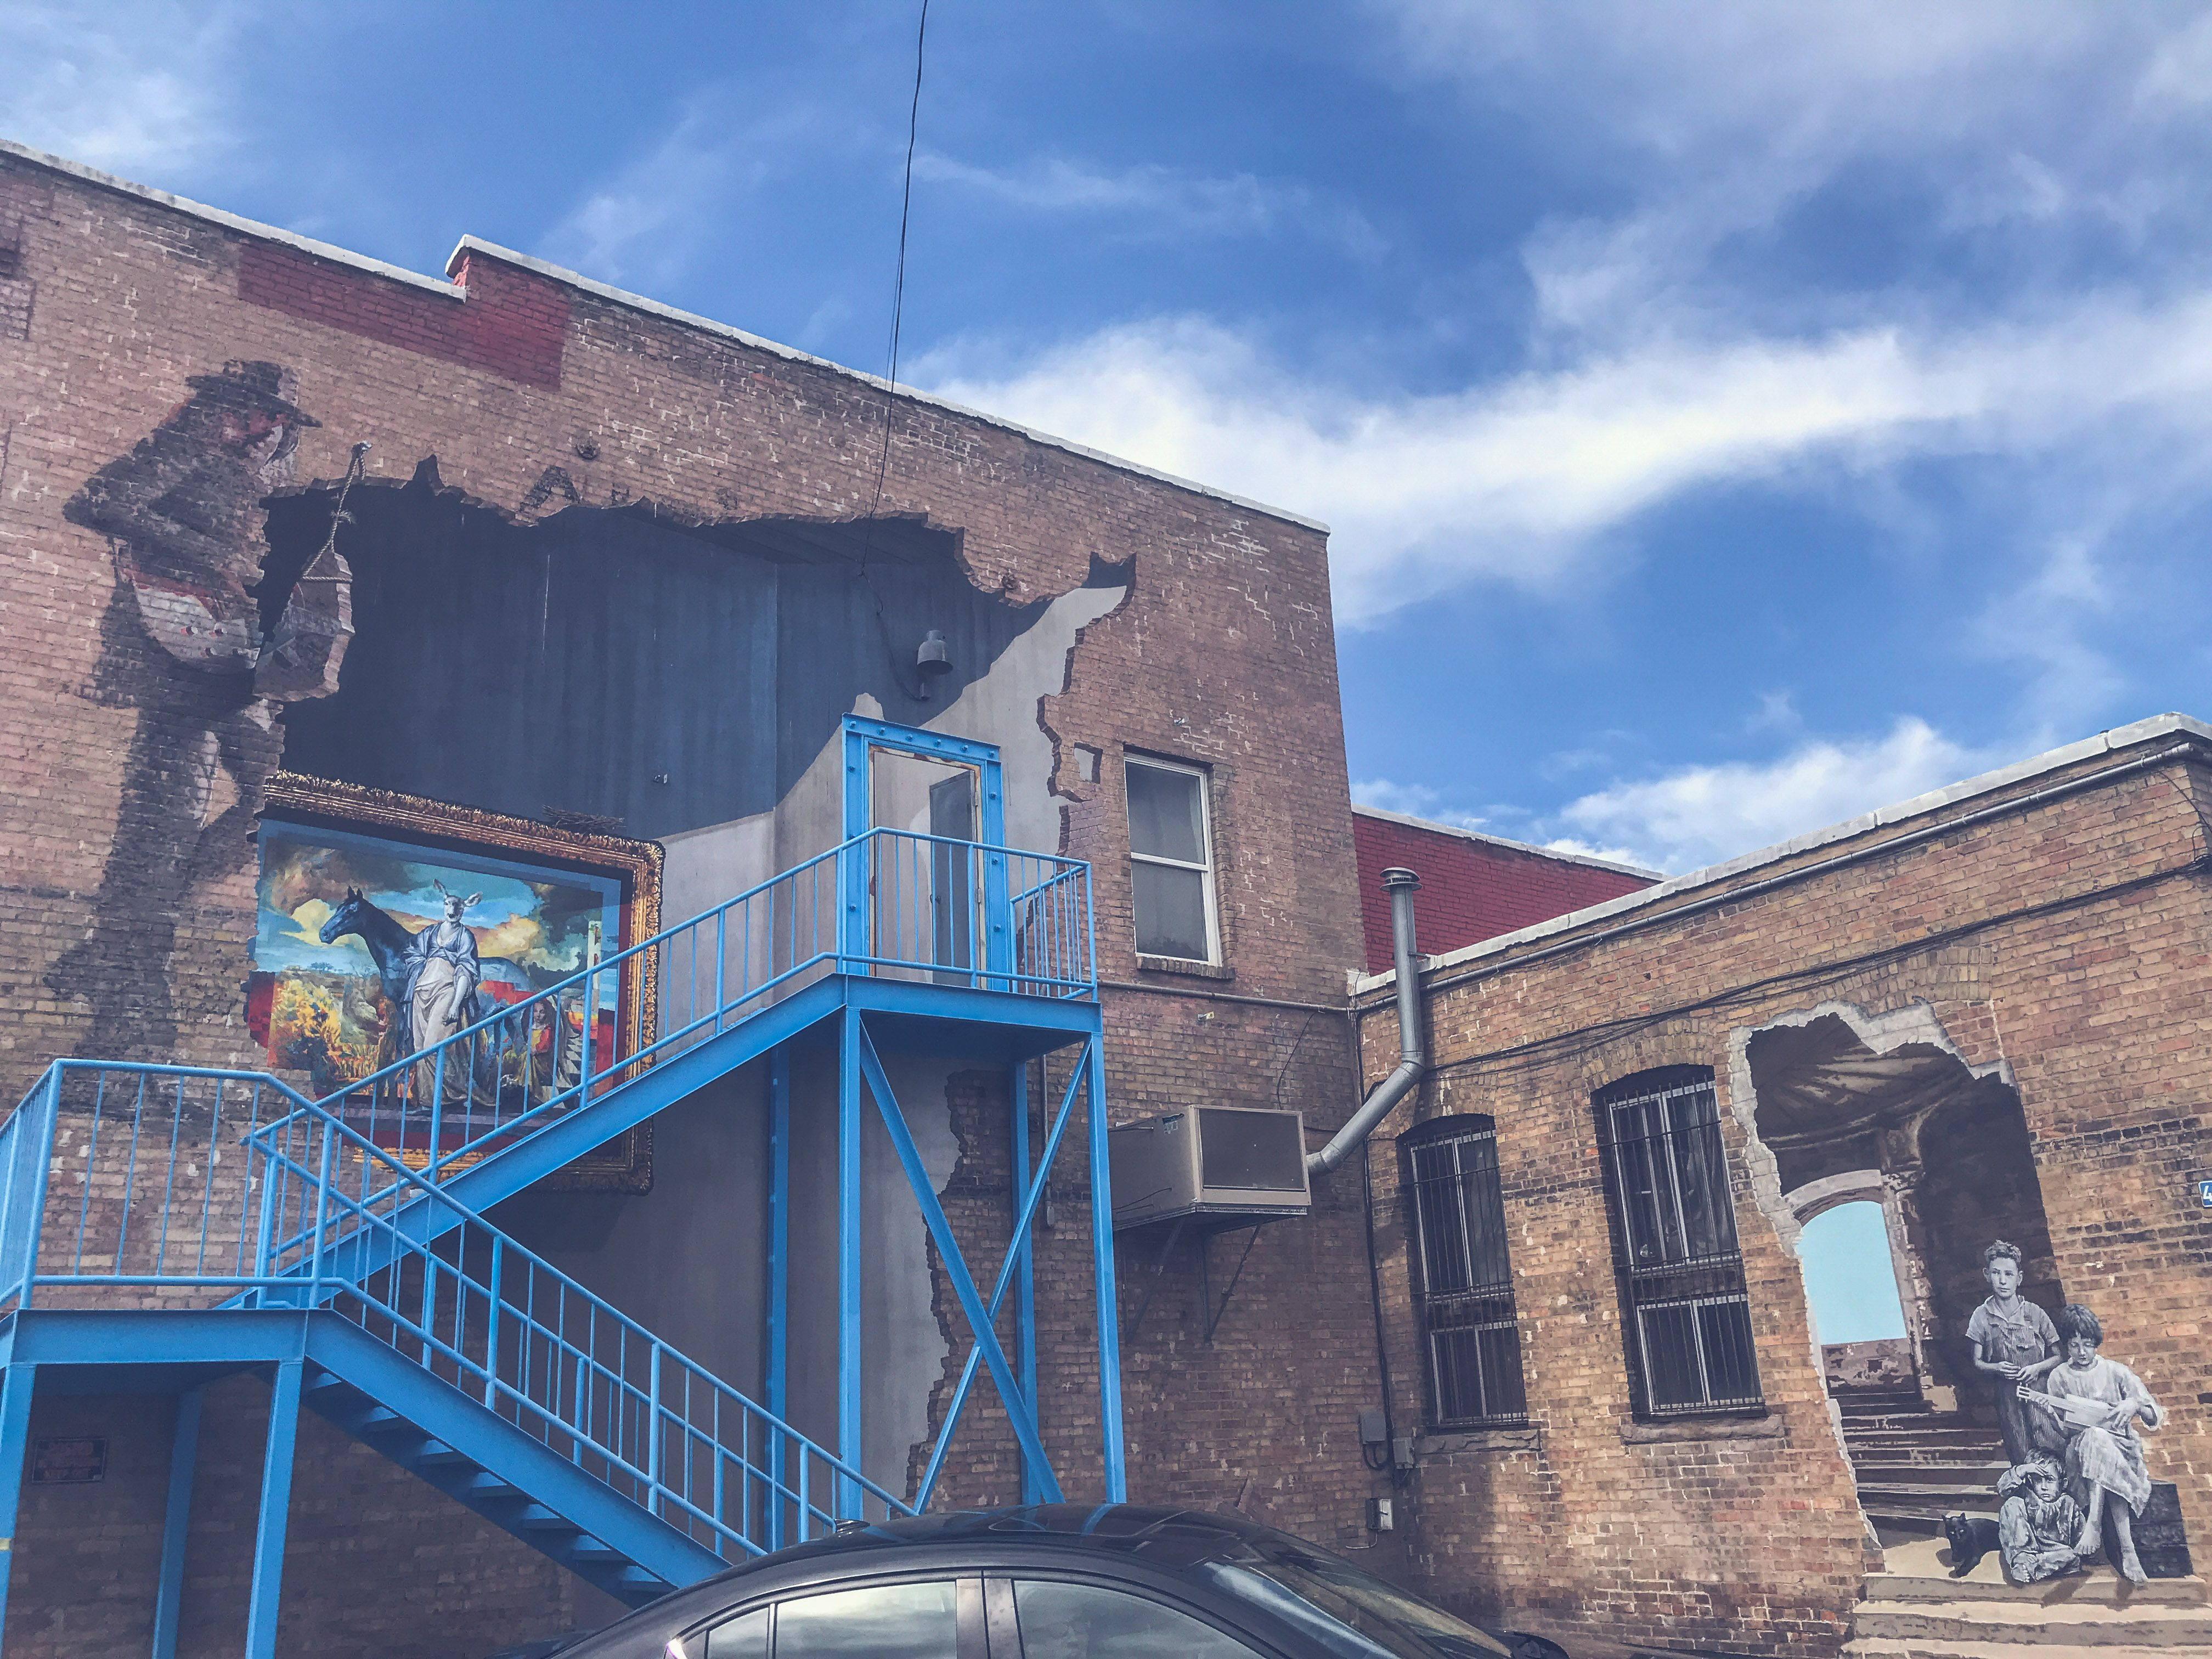 Positively Fourth Street mural. This building was built in